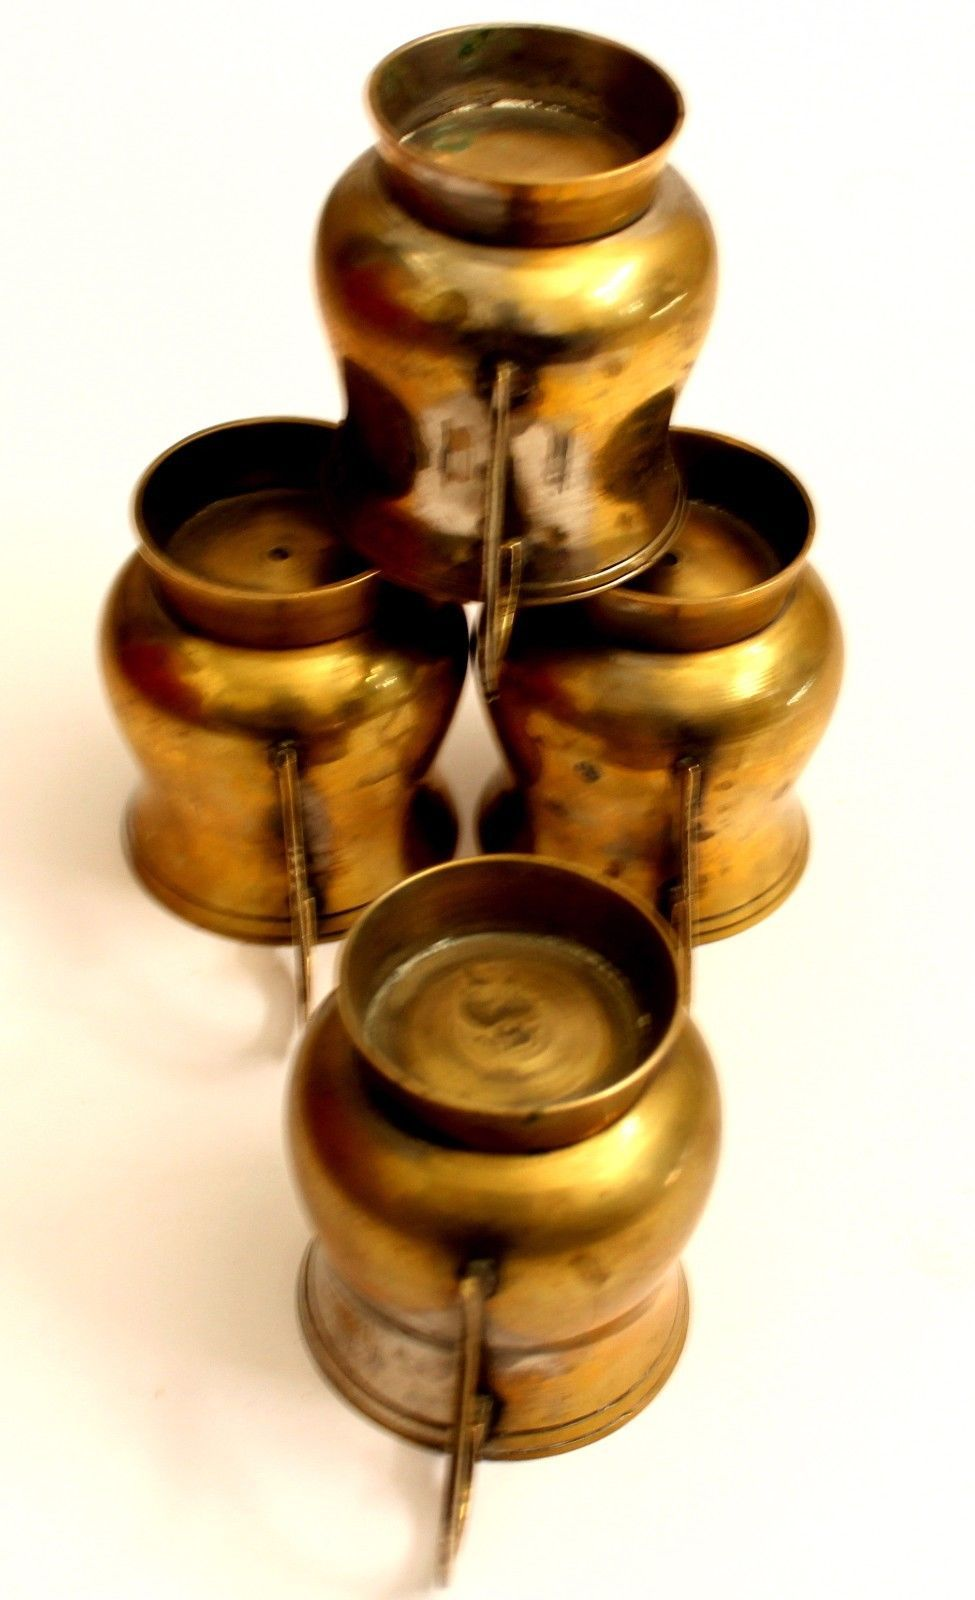 Antique set of 4 cups indian brass decorative collectible mugs old collection.